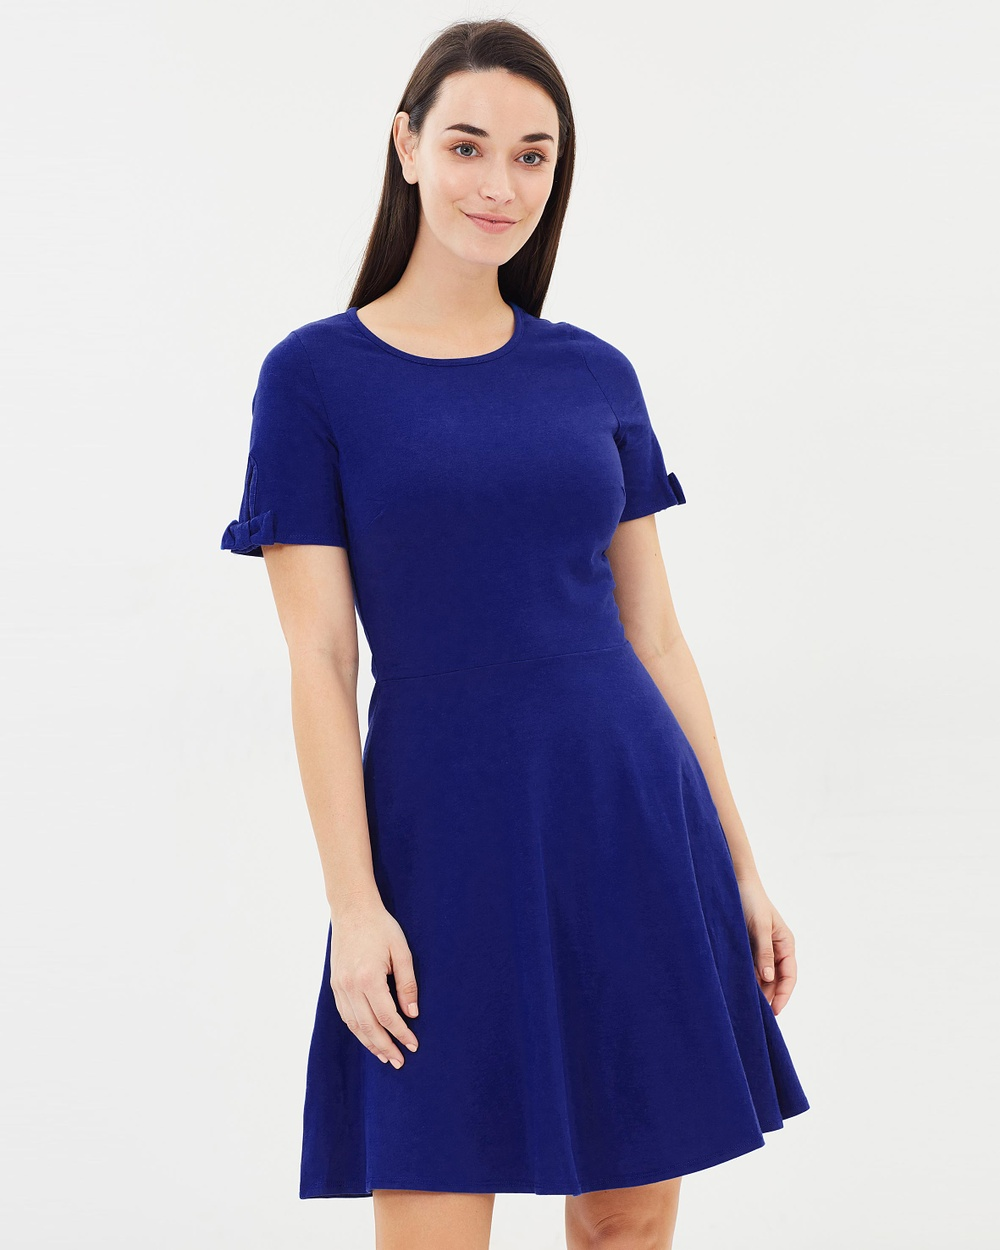 Dorothy Perkins Bow Short Sleeve Jersey Dress Dresses Cobalt Bow Short Sleeve Jersey Dress